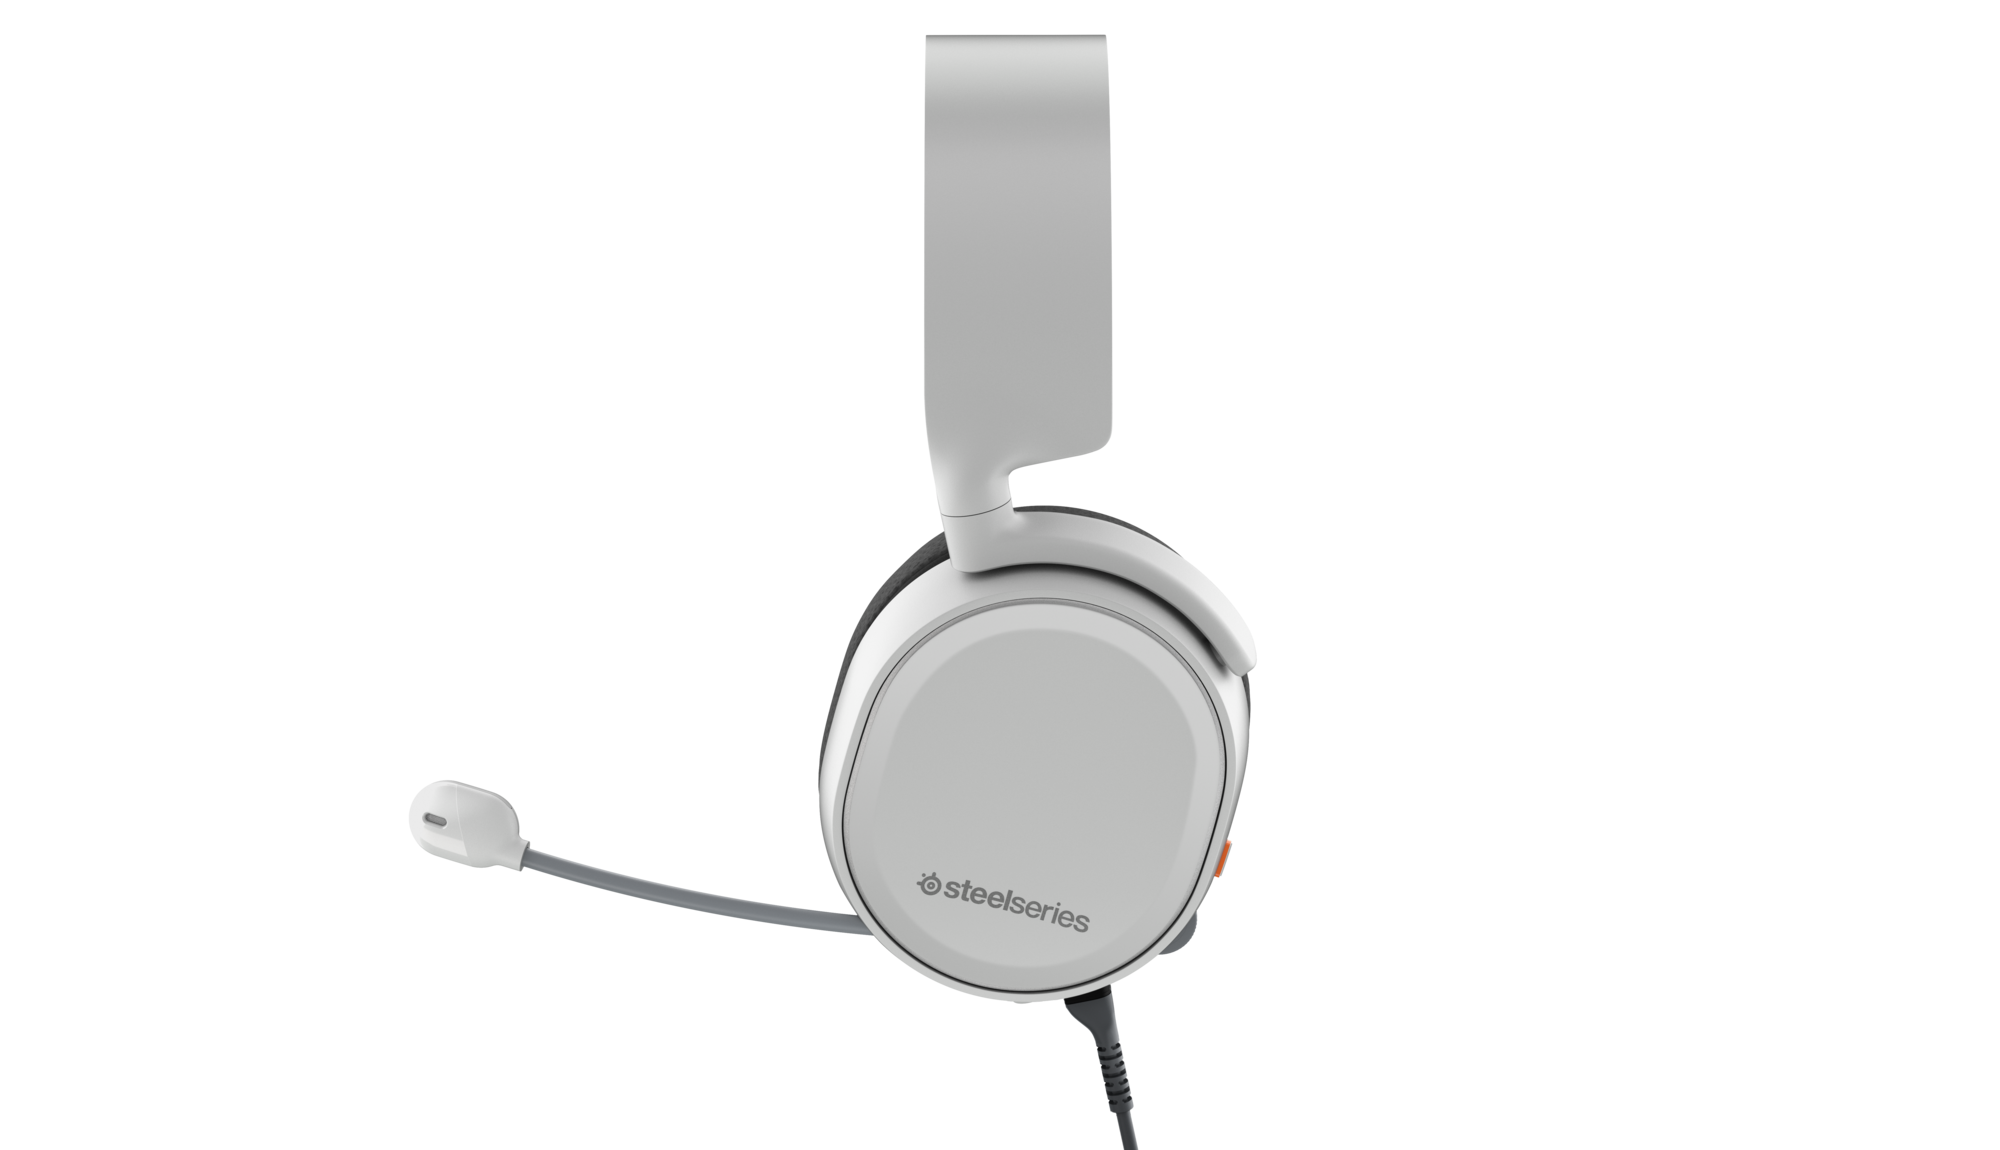 SteelSeries Arctic 3 White Edition